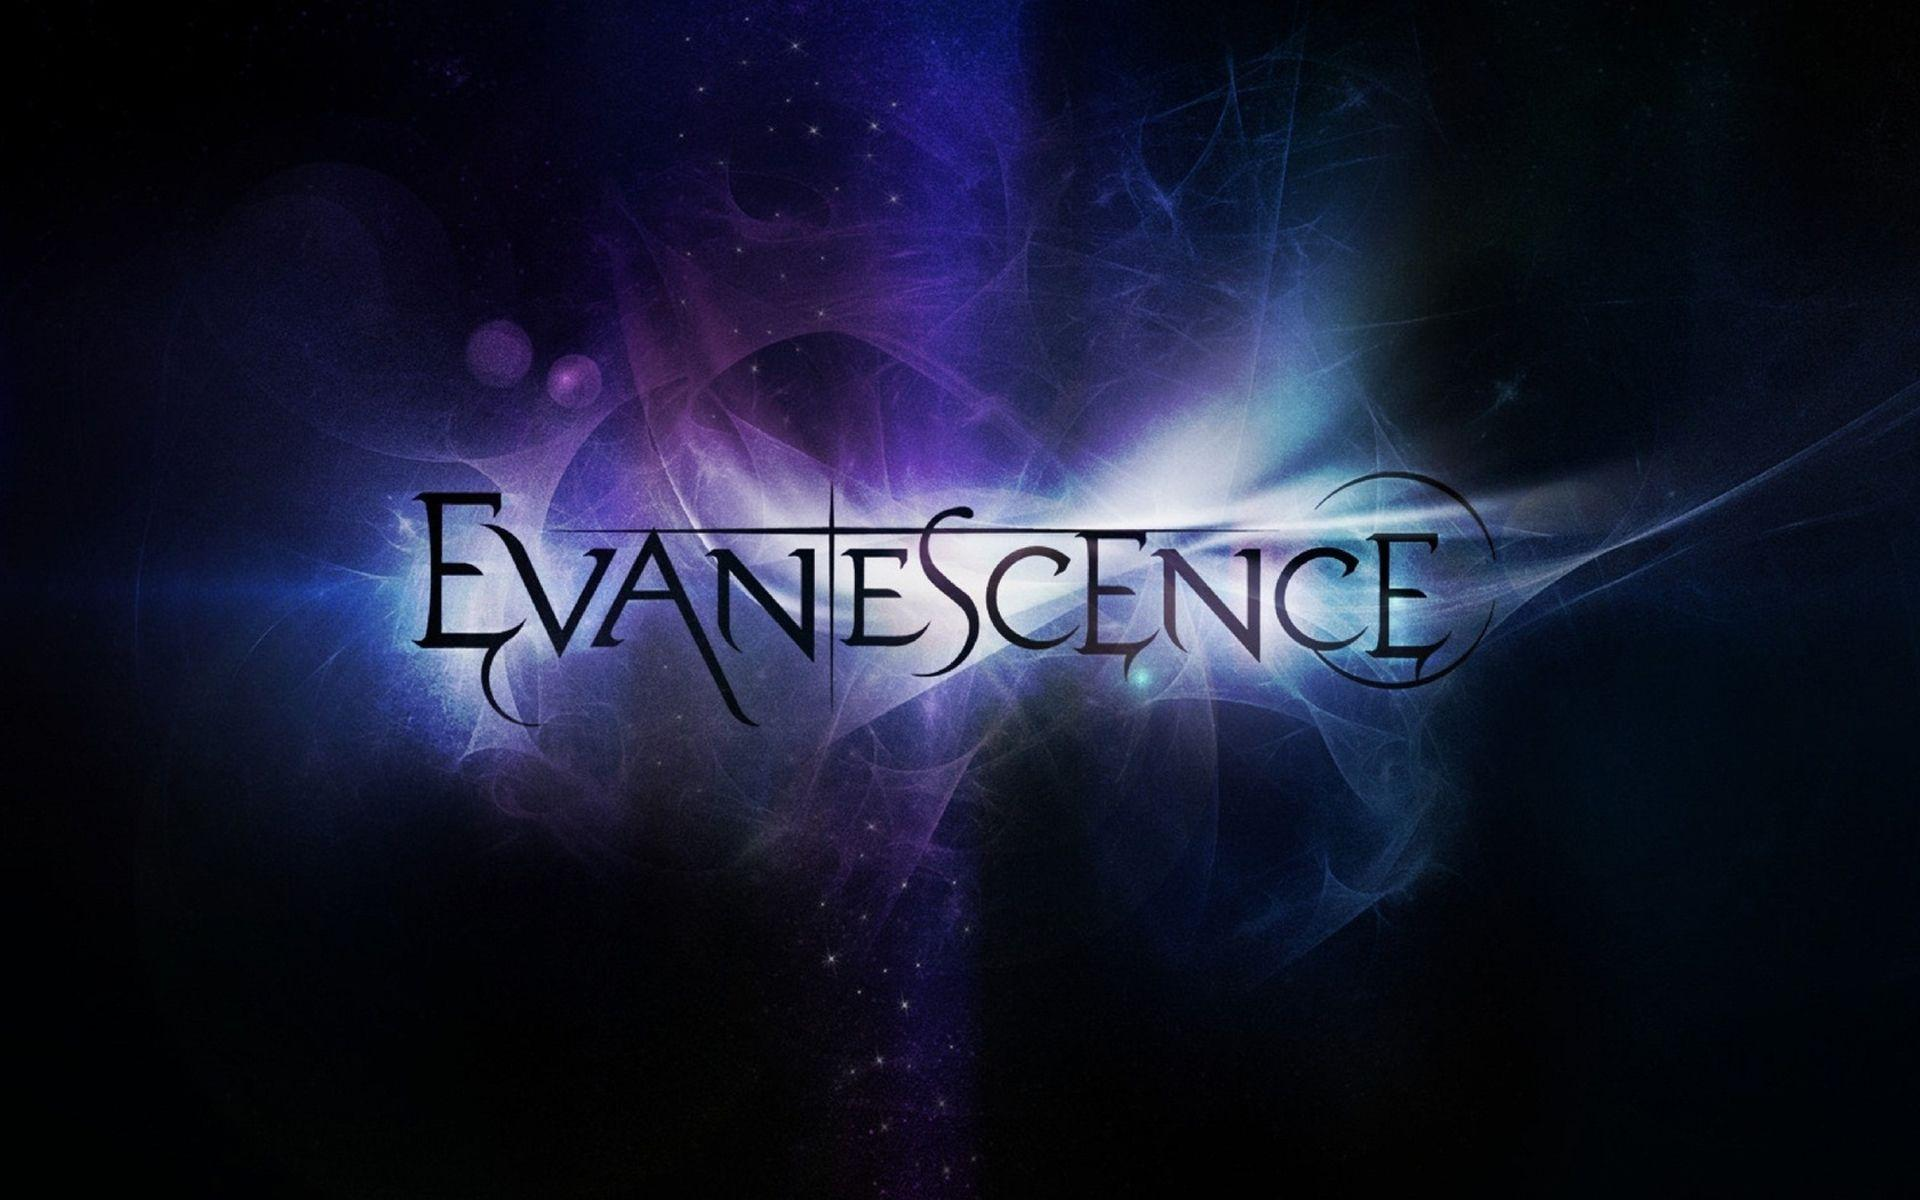 Evanescence Wallpapers 1920x1200